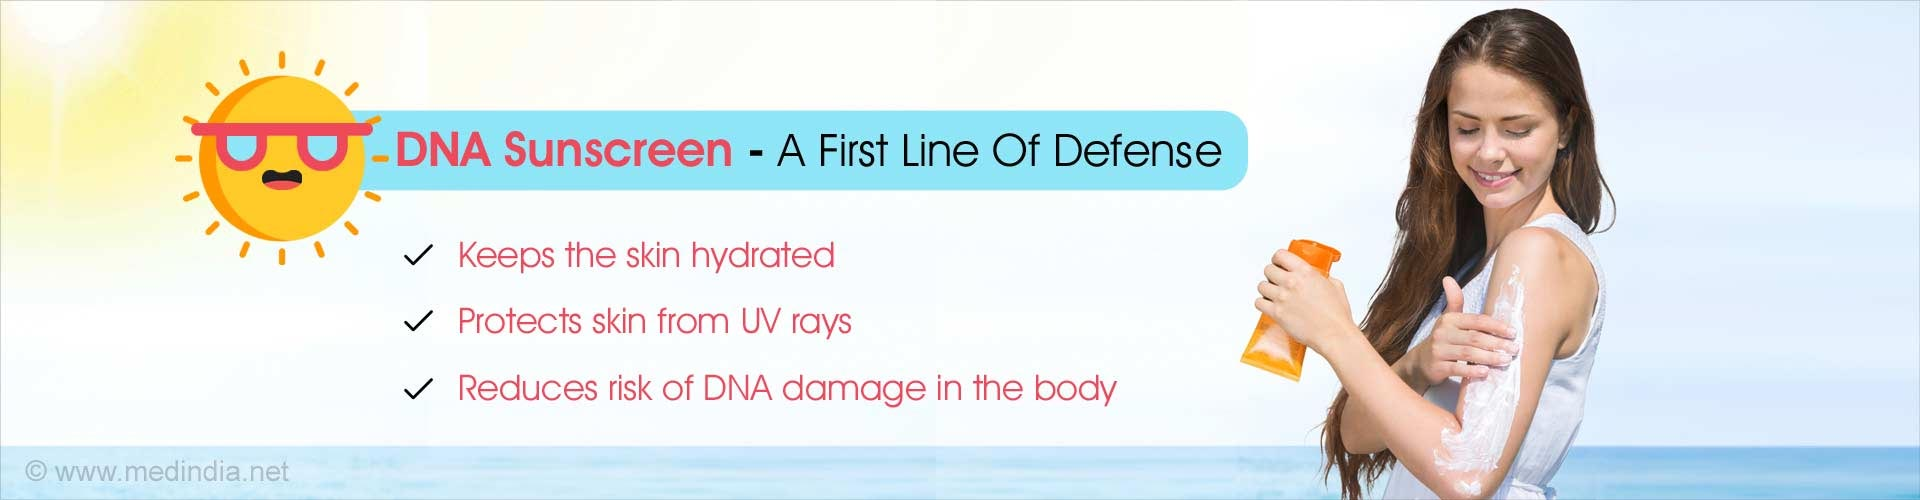 DNA Sunscreen Protects Skin, Keeps Skin Hydrated